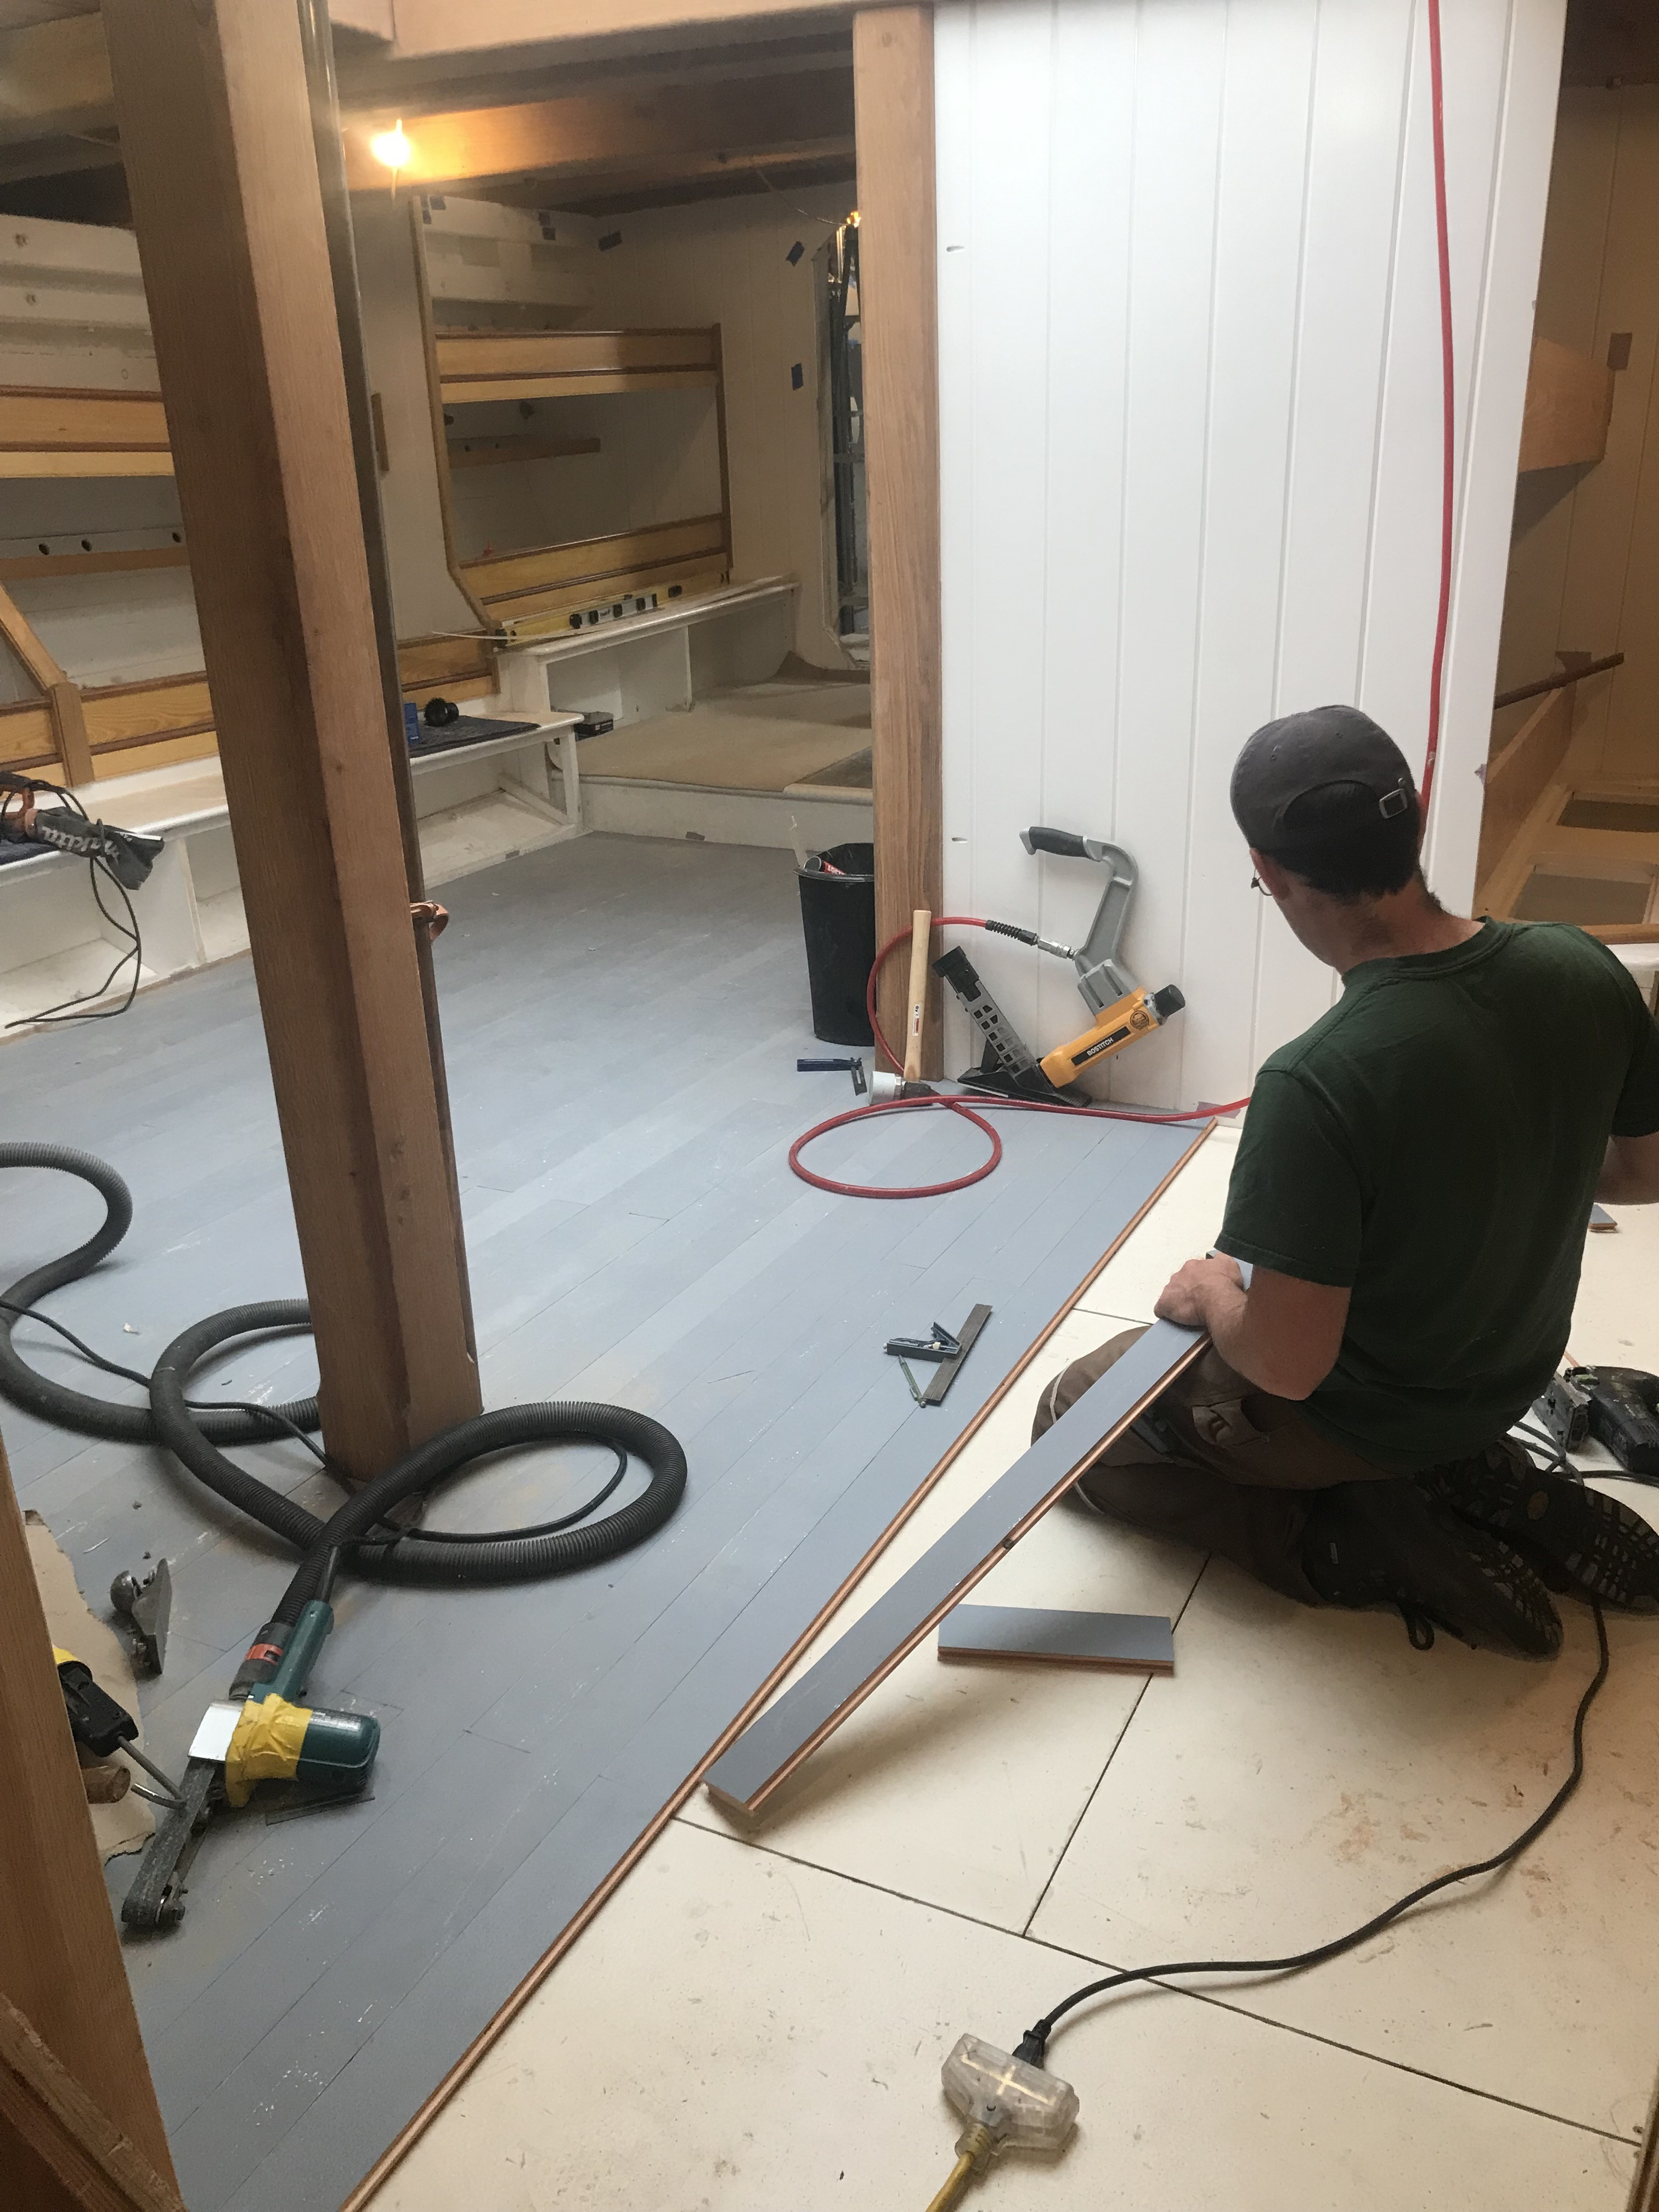 Sam Perkins has been working hard to finish the installation of the douglas fir finished flooring in the Main Cabin.  Once complete he will begin trimming for the liftout panels that will provide access to plumbing, tanks, and bilge storage areas